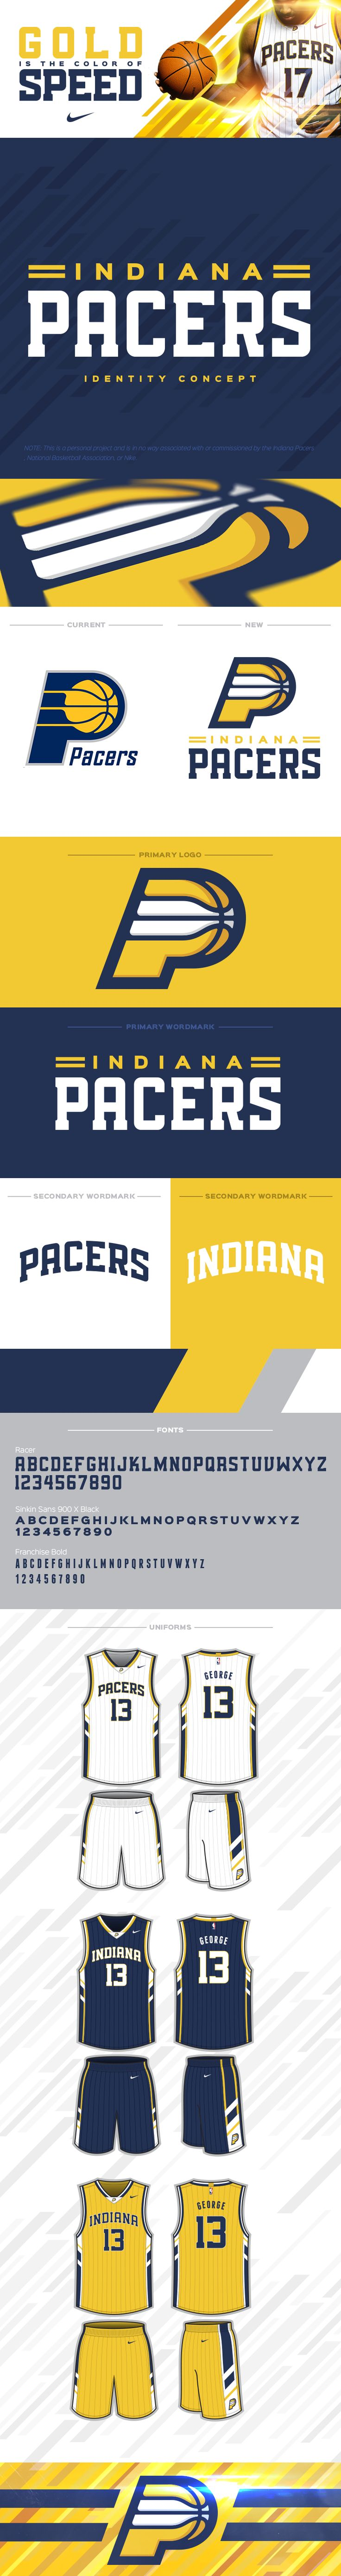 This is a Identity Concept for the Indiana Pacers basketball team.                                                                                                                                                                                 More